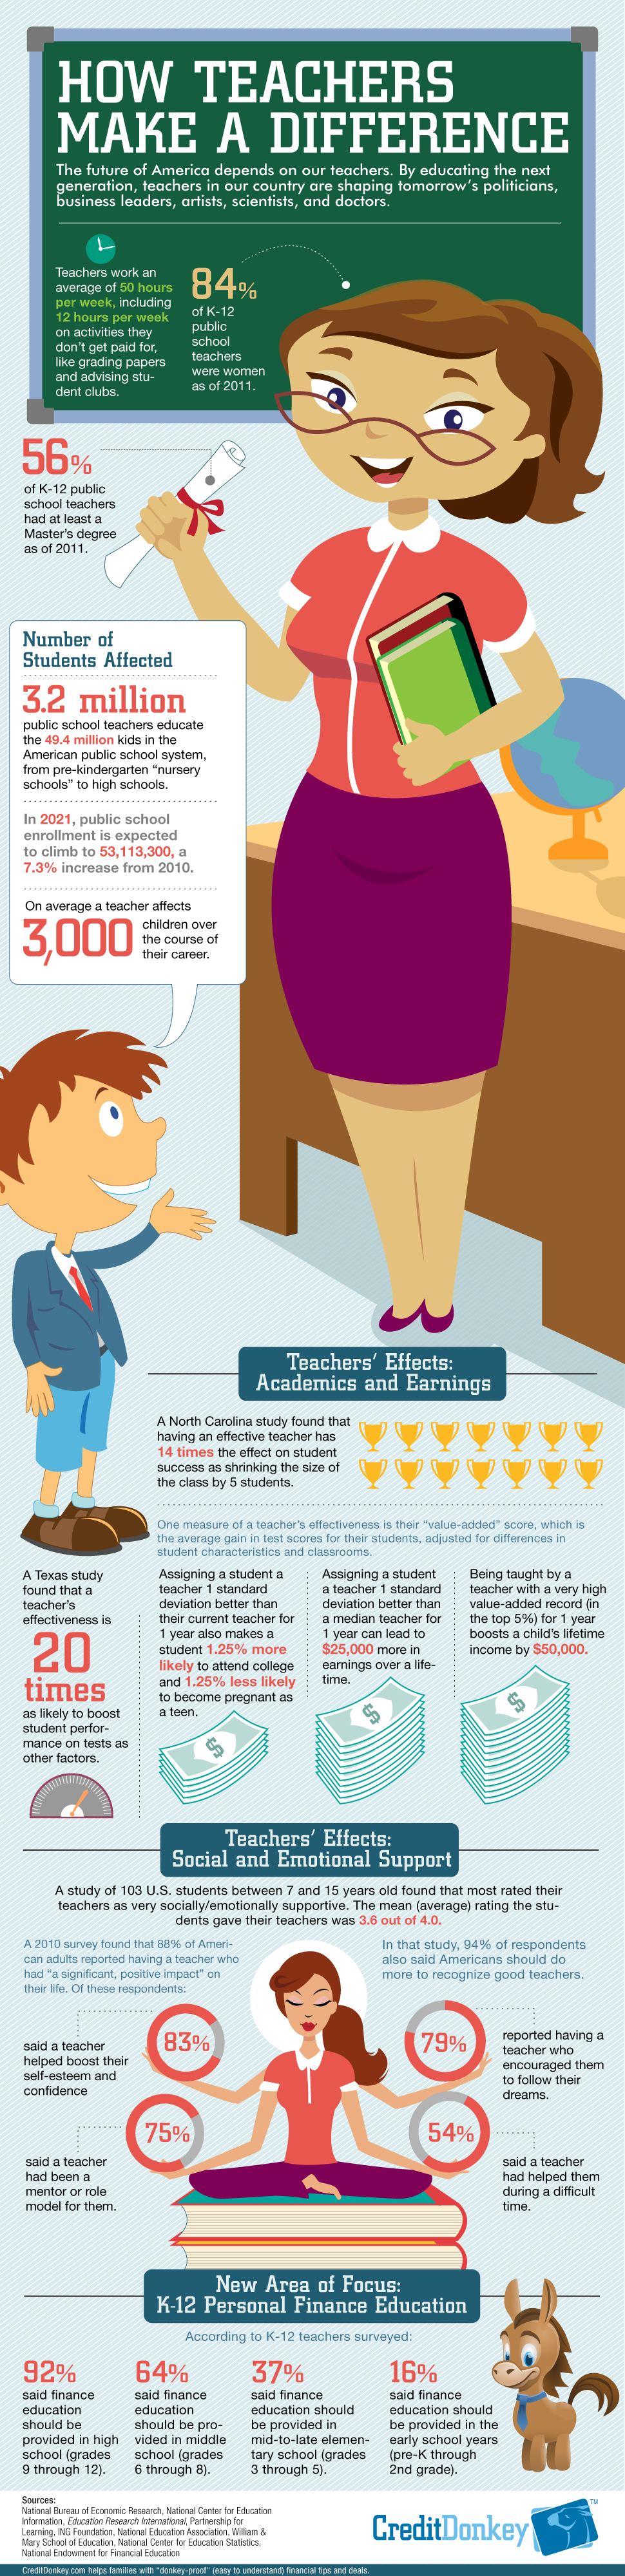 how-teachers-make-a-difference